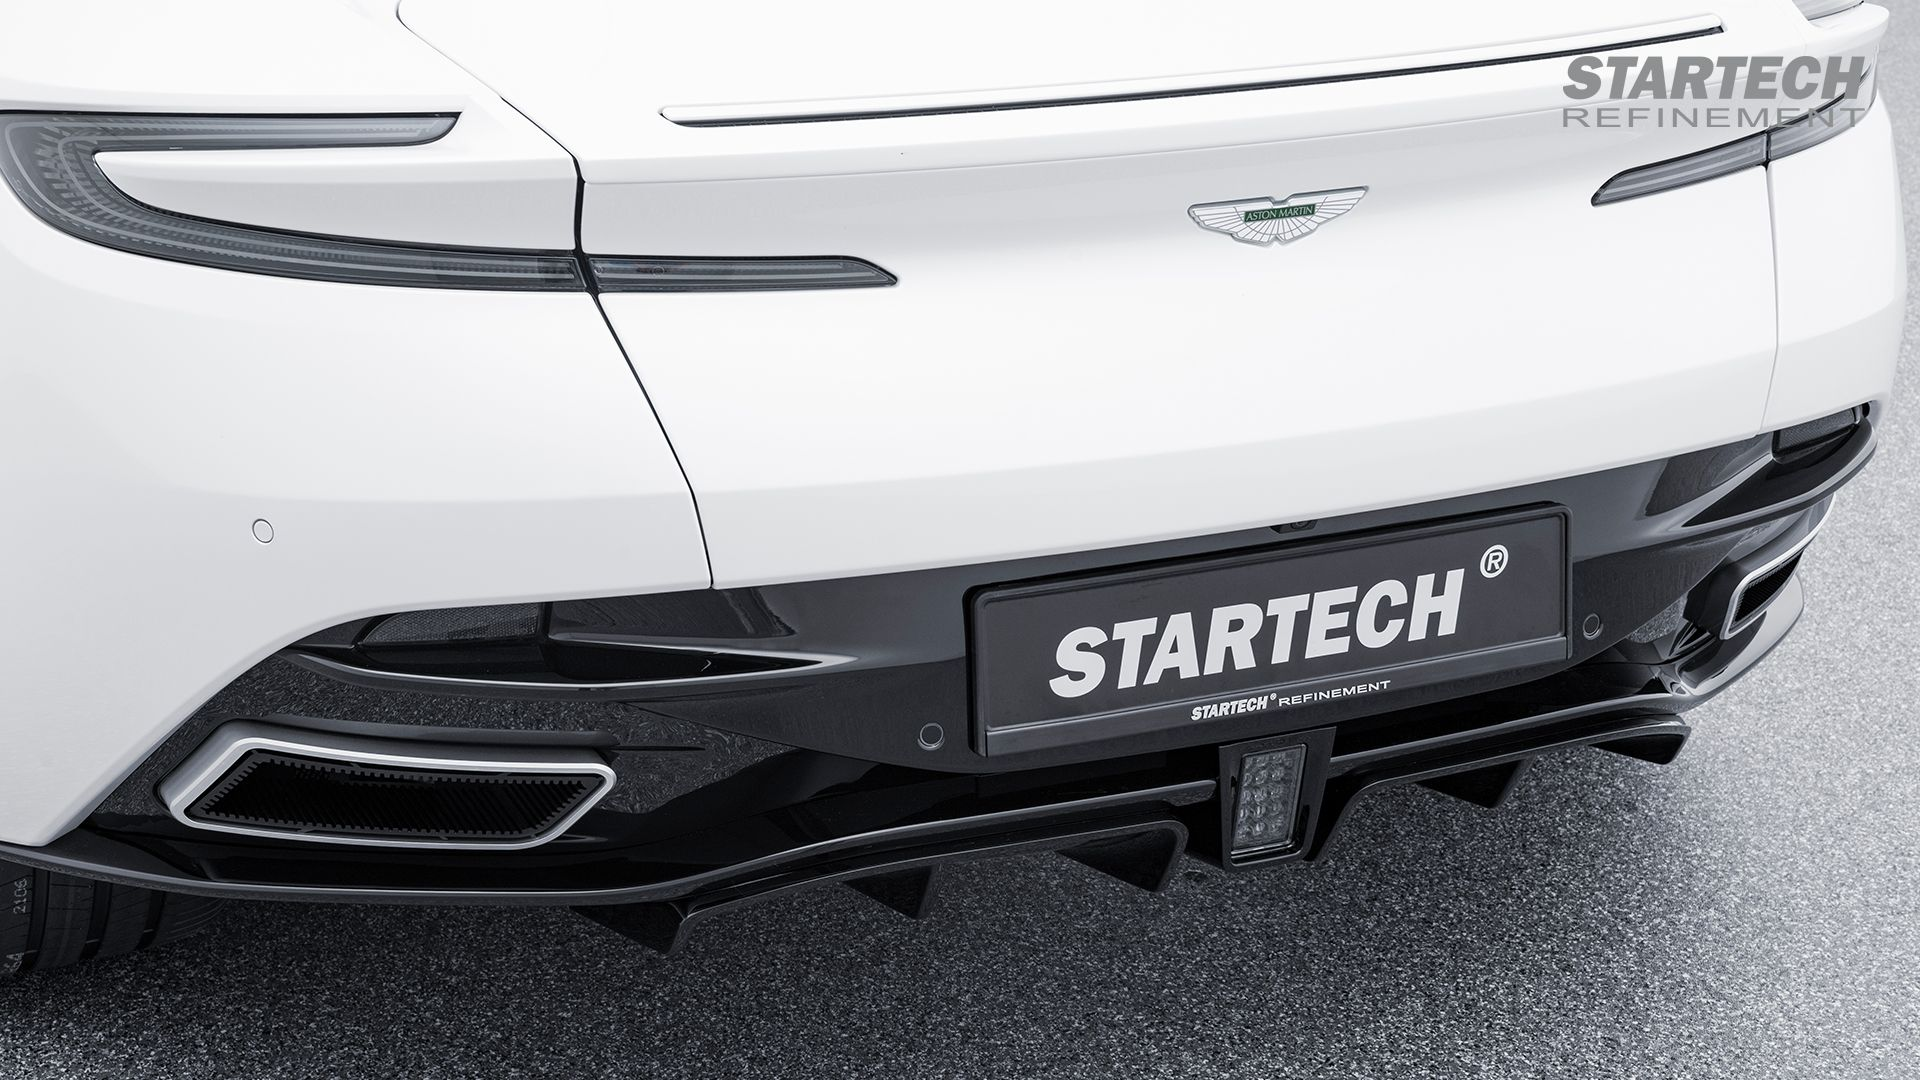 Startech Rear Diffusor And Exhaust Tips For Aston Martin Db11 Aston Martin Db11 Aston Martin High End Cars